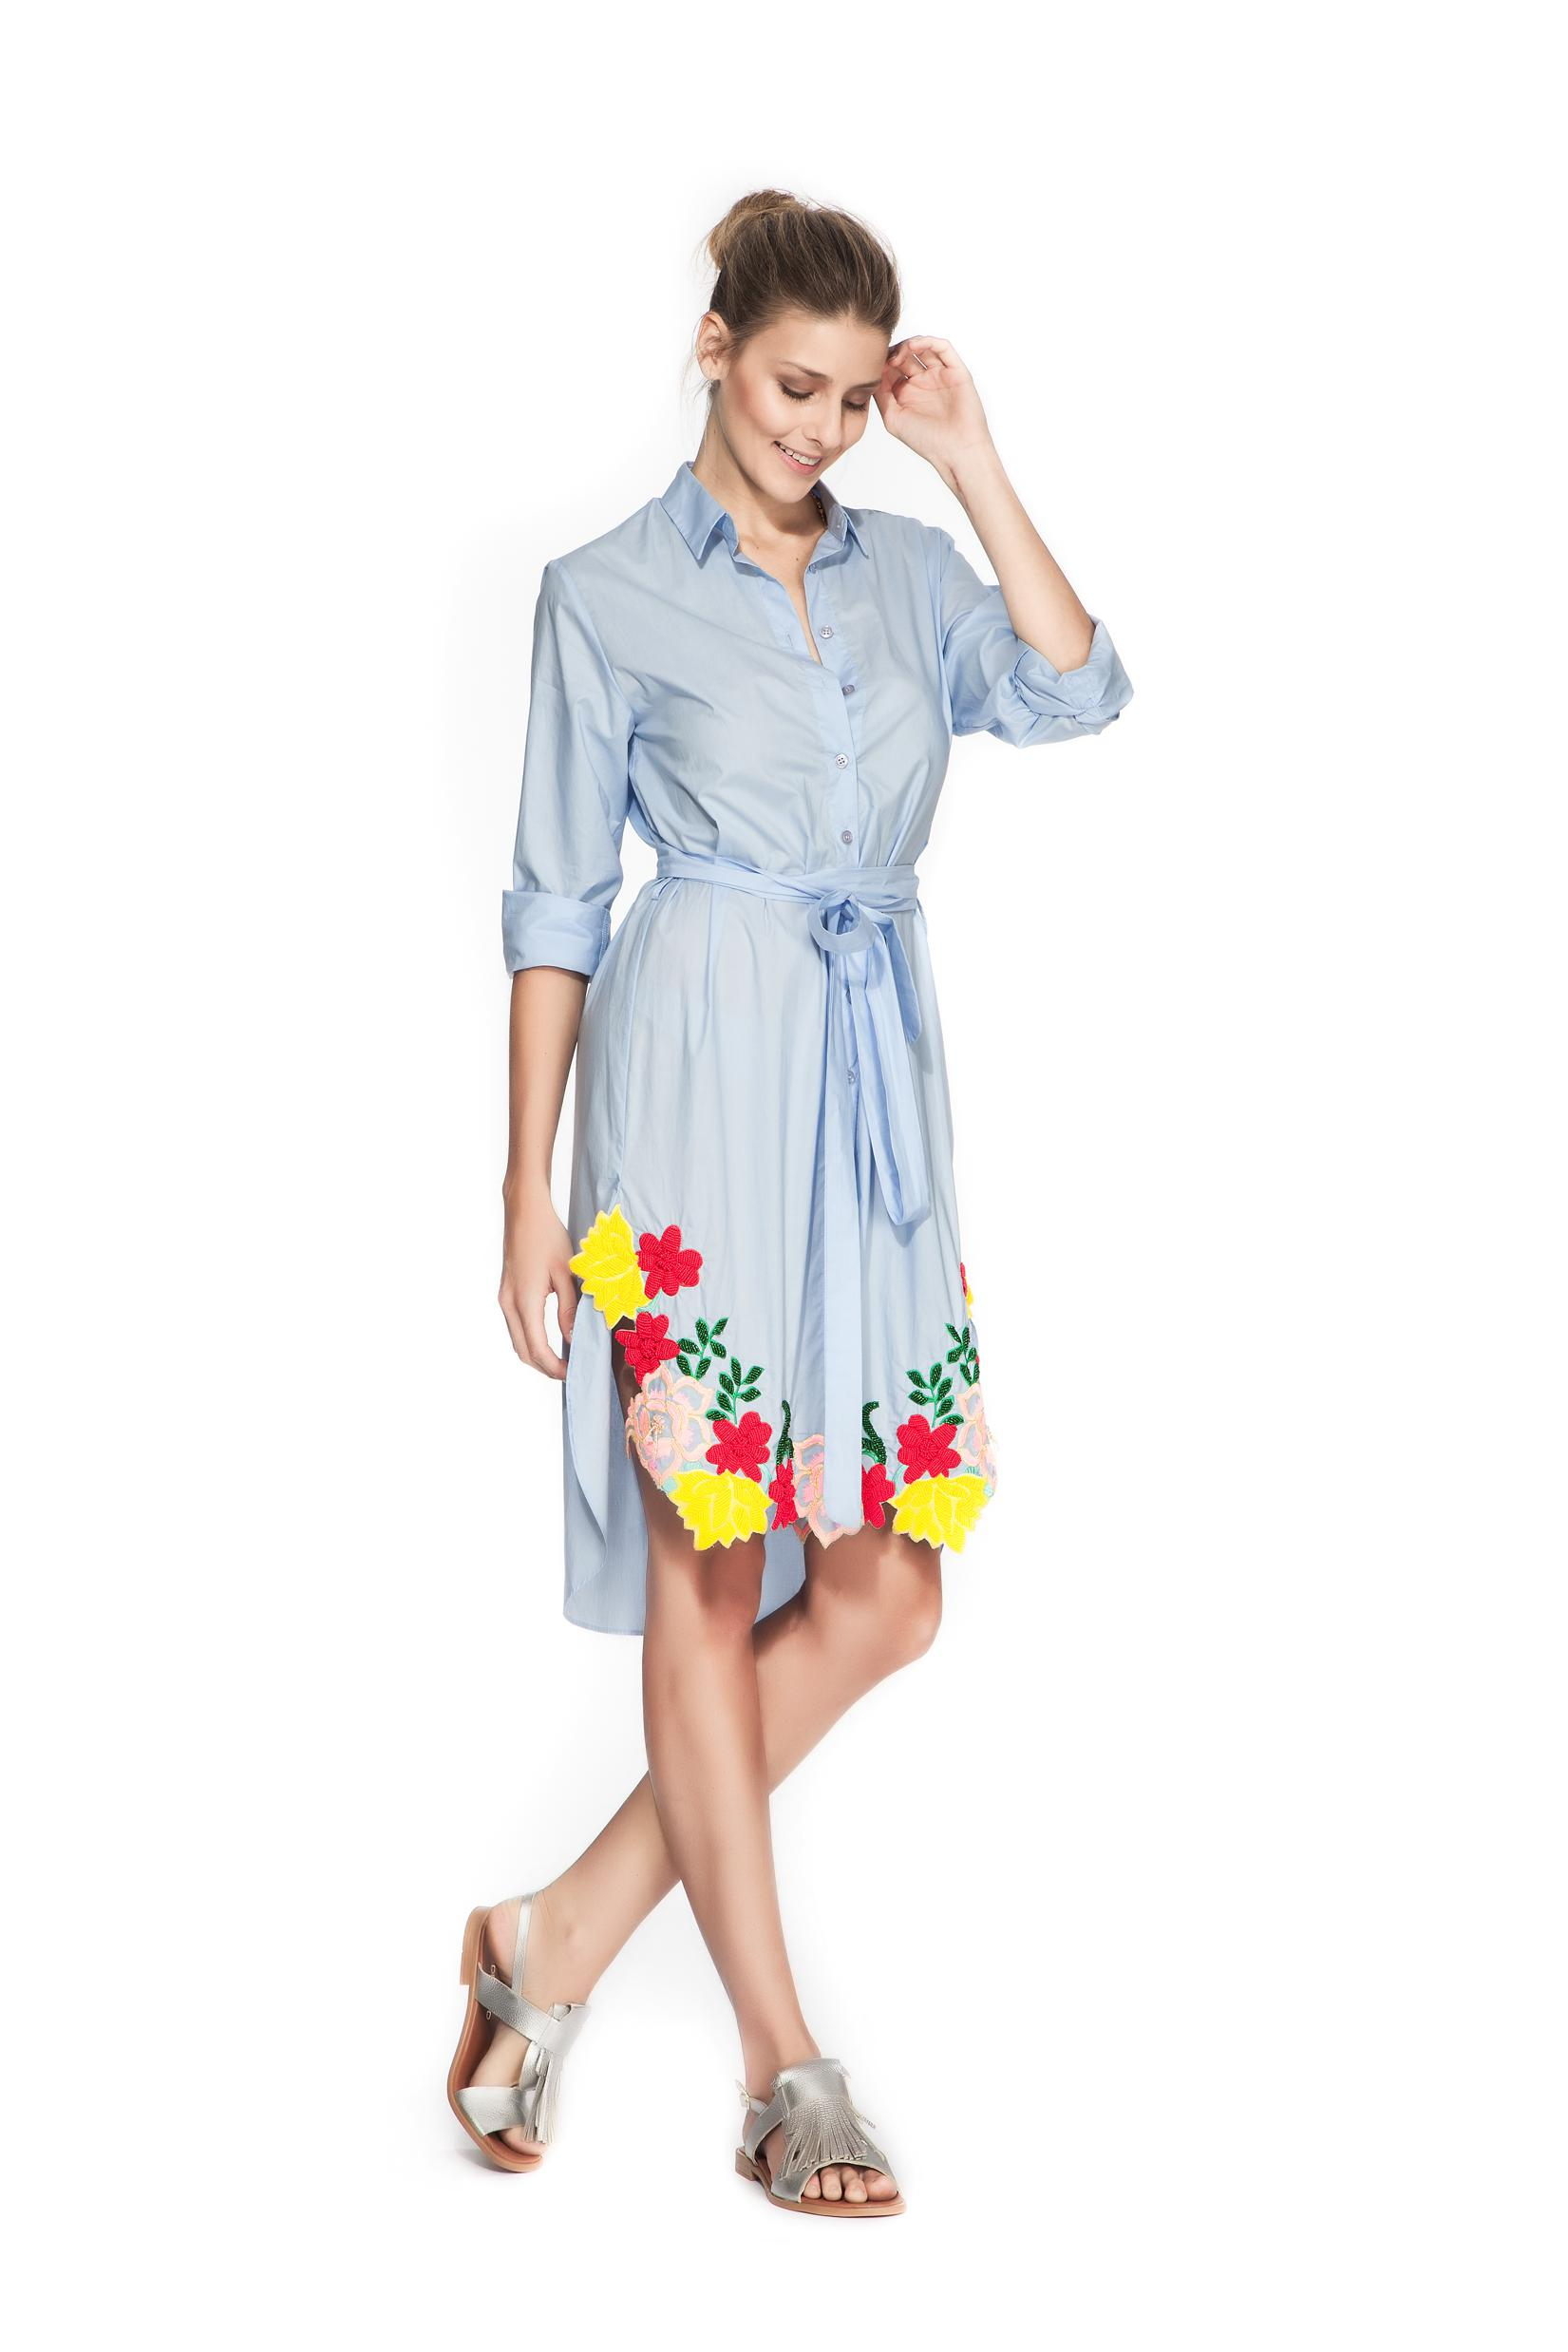 blue floral summer dress loveit concept